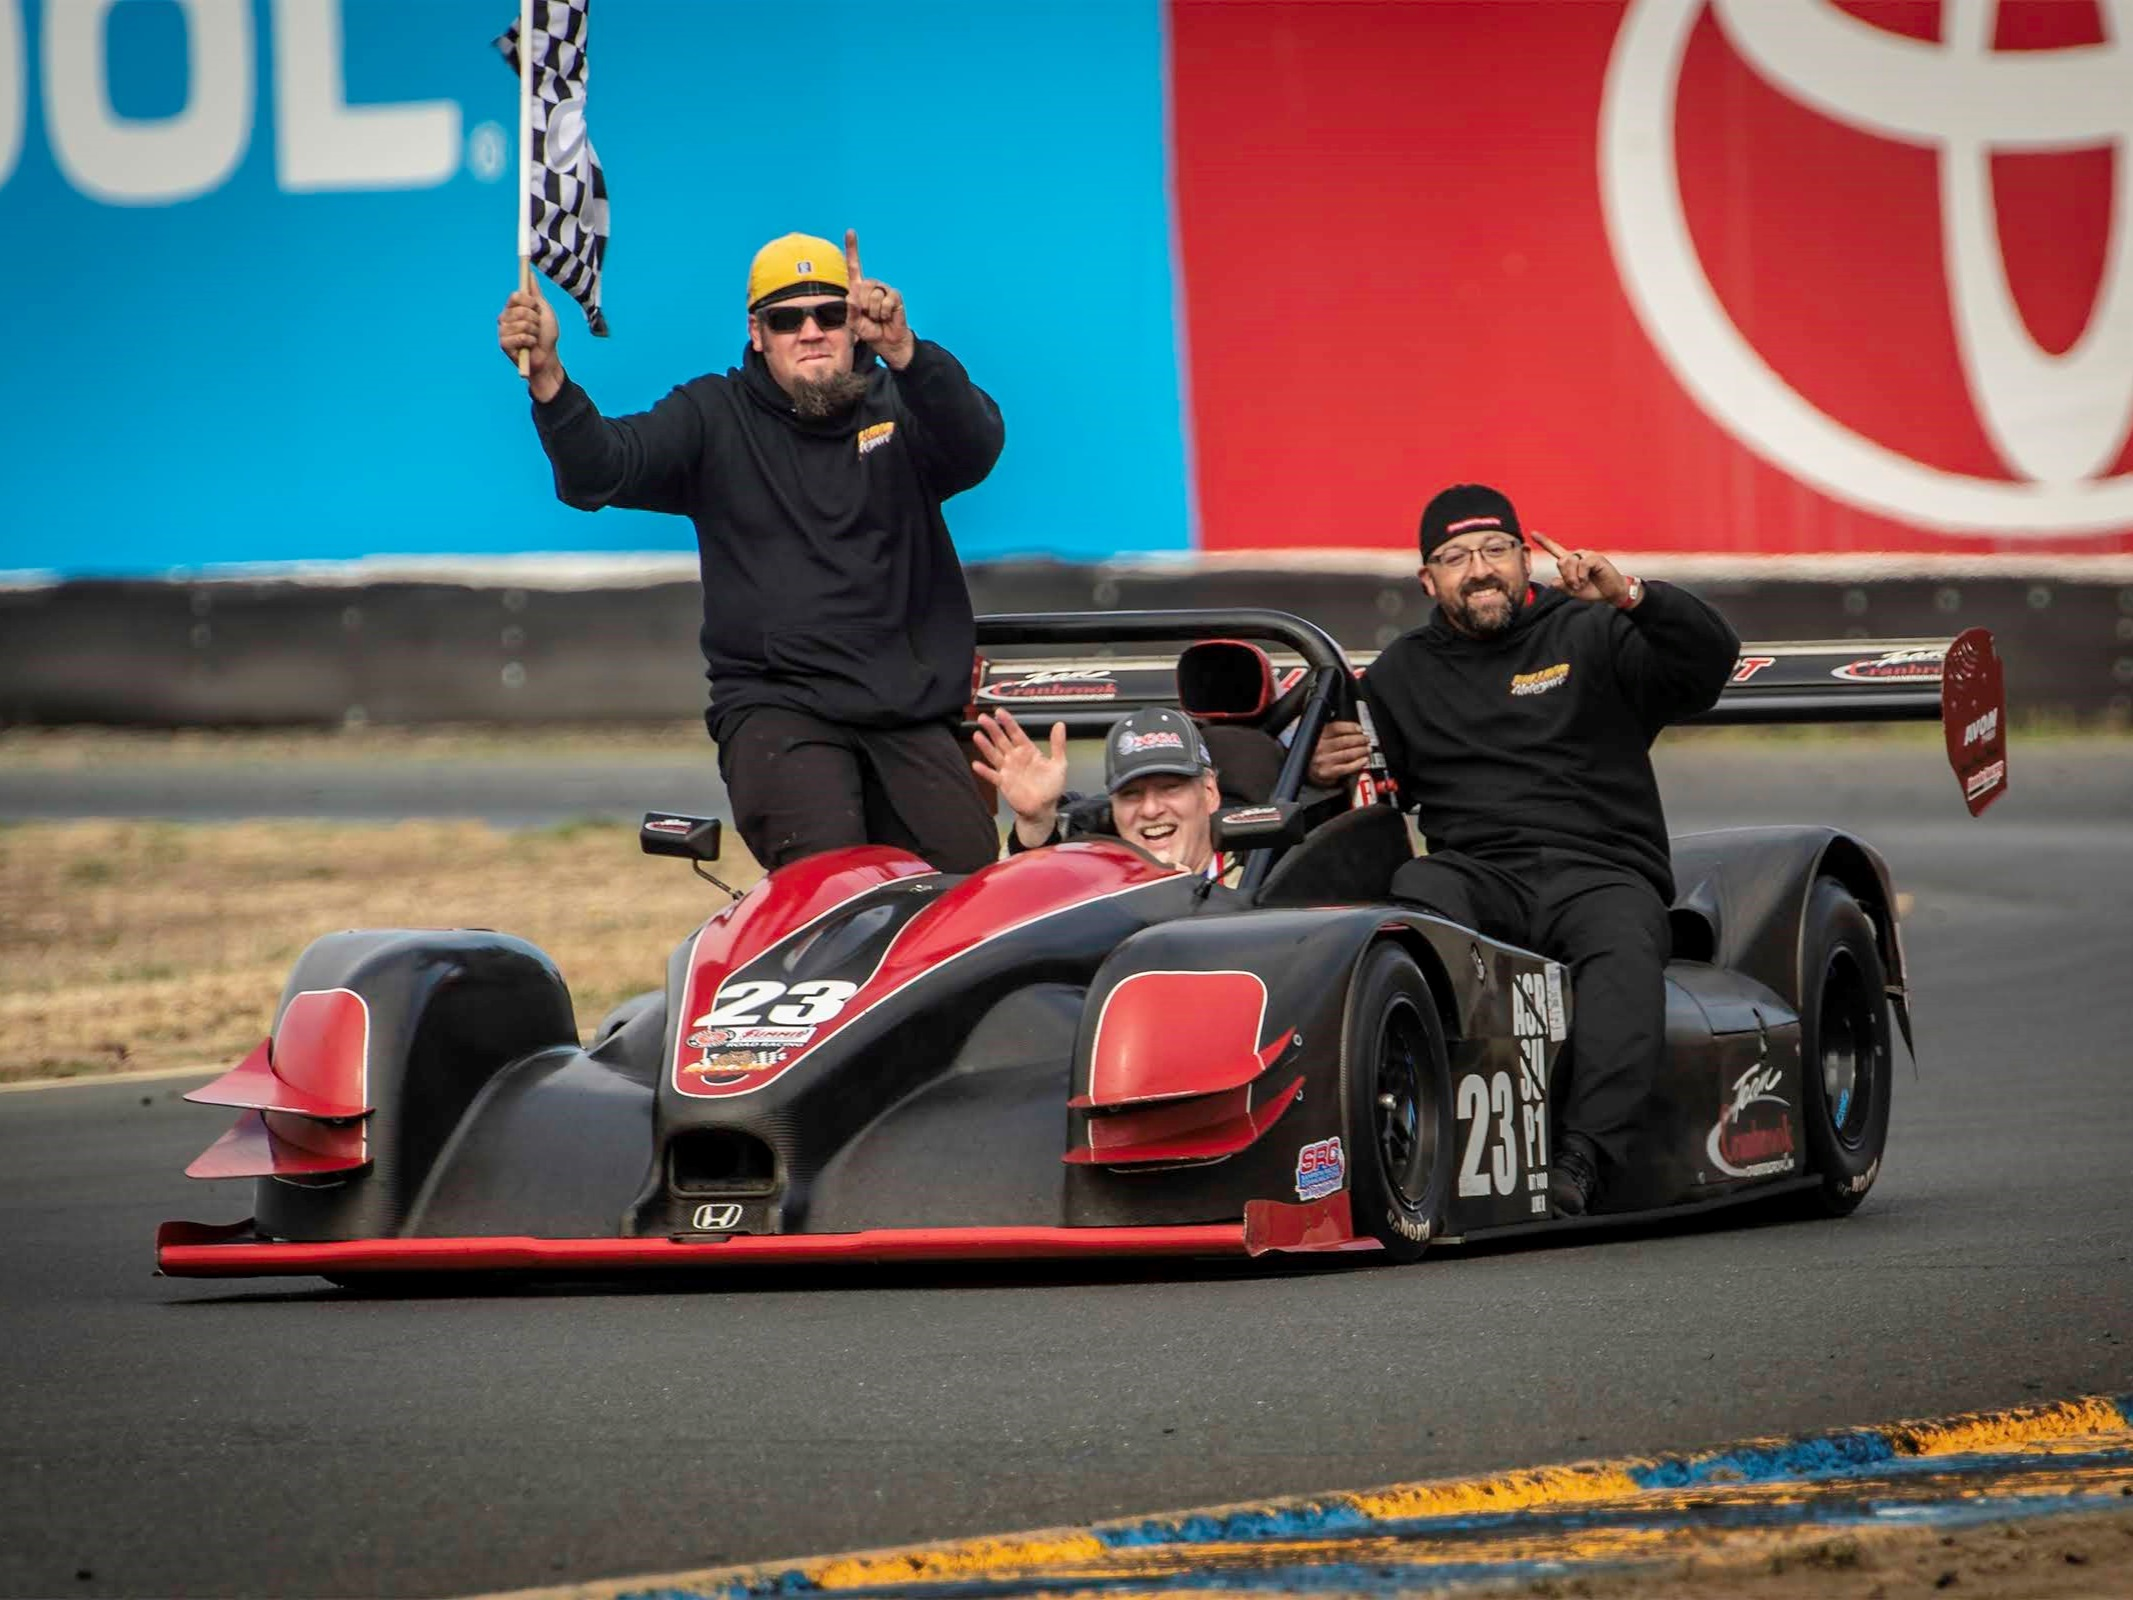 Victory lap at Sonoma Runoffs